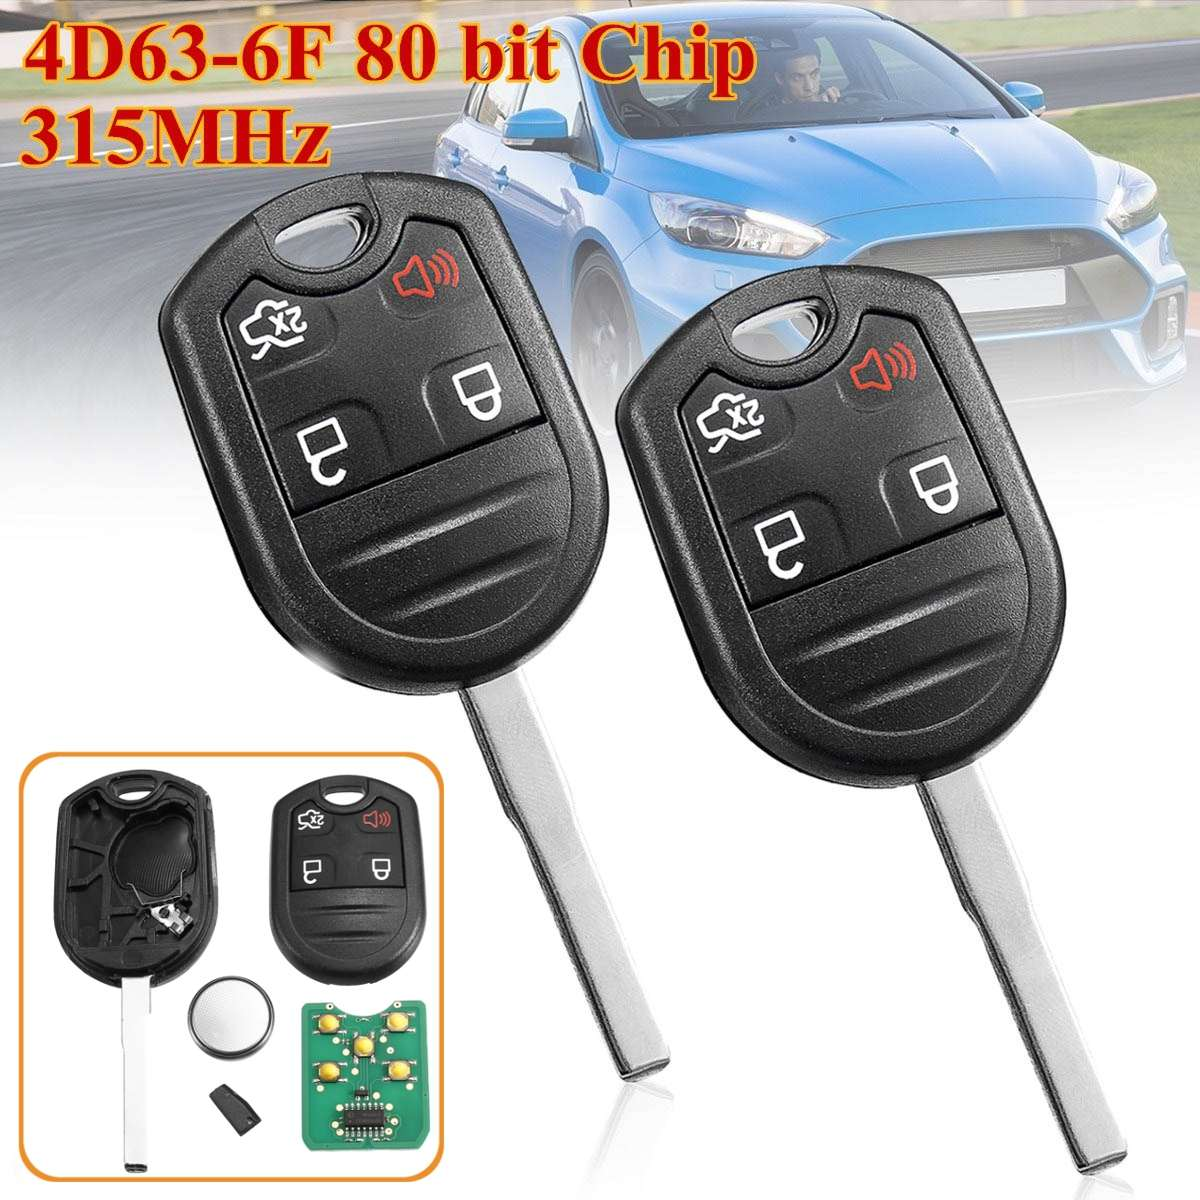 2pcs 4 Buttons Remote Key Fob with 4D63-6F 80 bit Chip 315MHz For Ford for Ford F-150 F-250 F350 CWTWB1U793